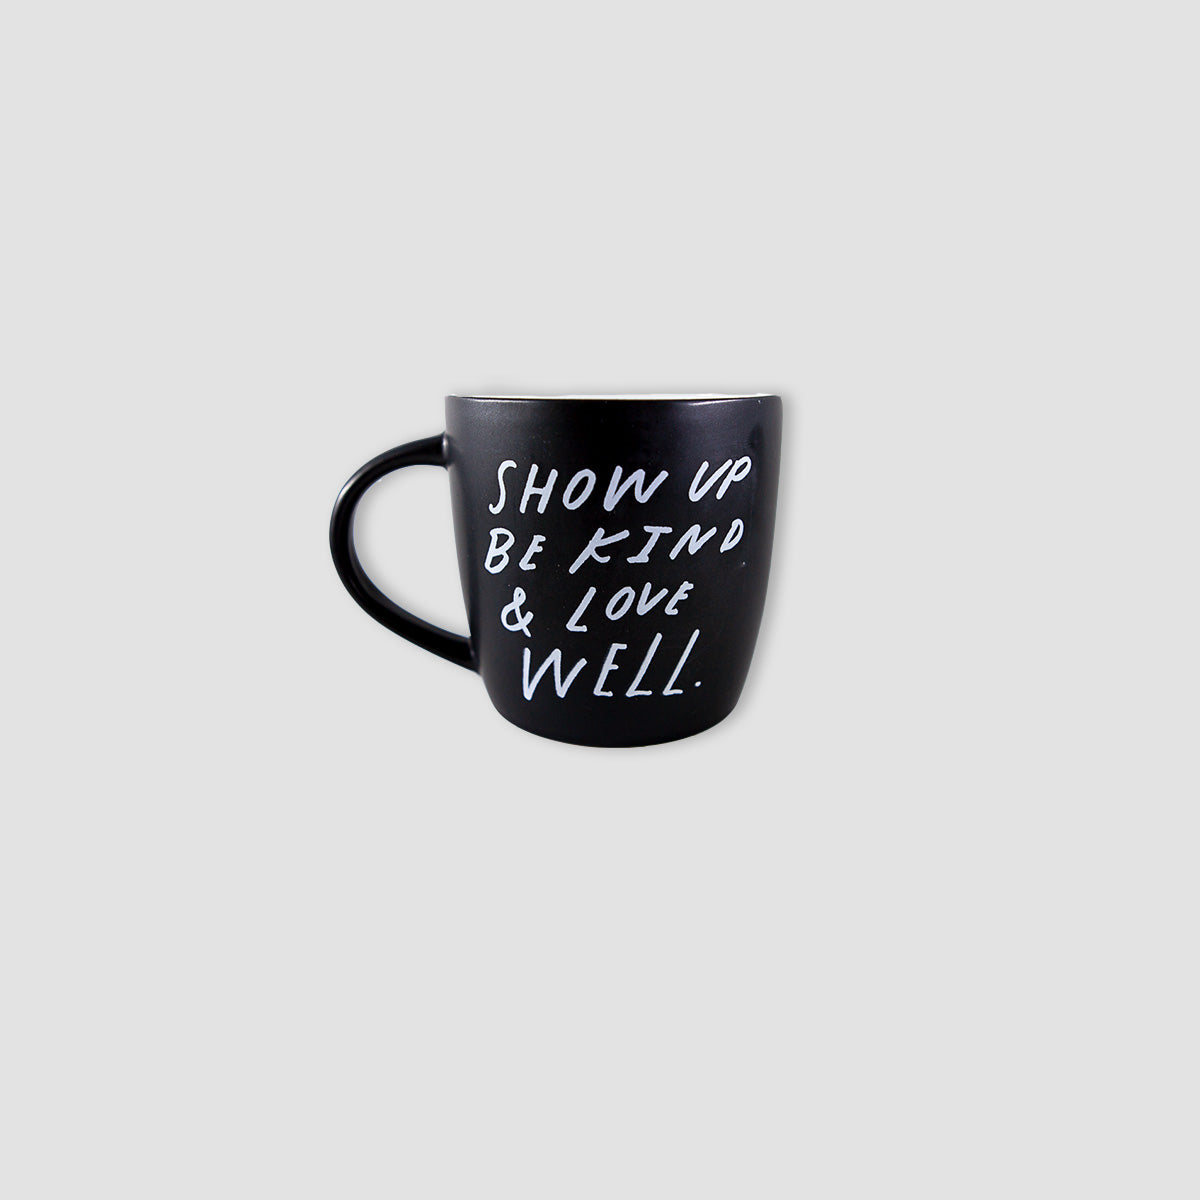 Show Up Be Kind & Love Well Mug